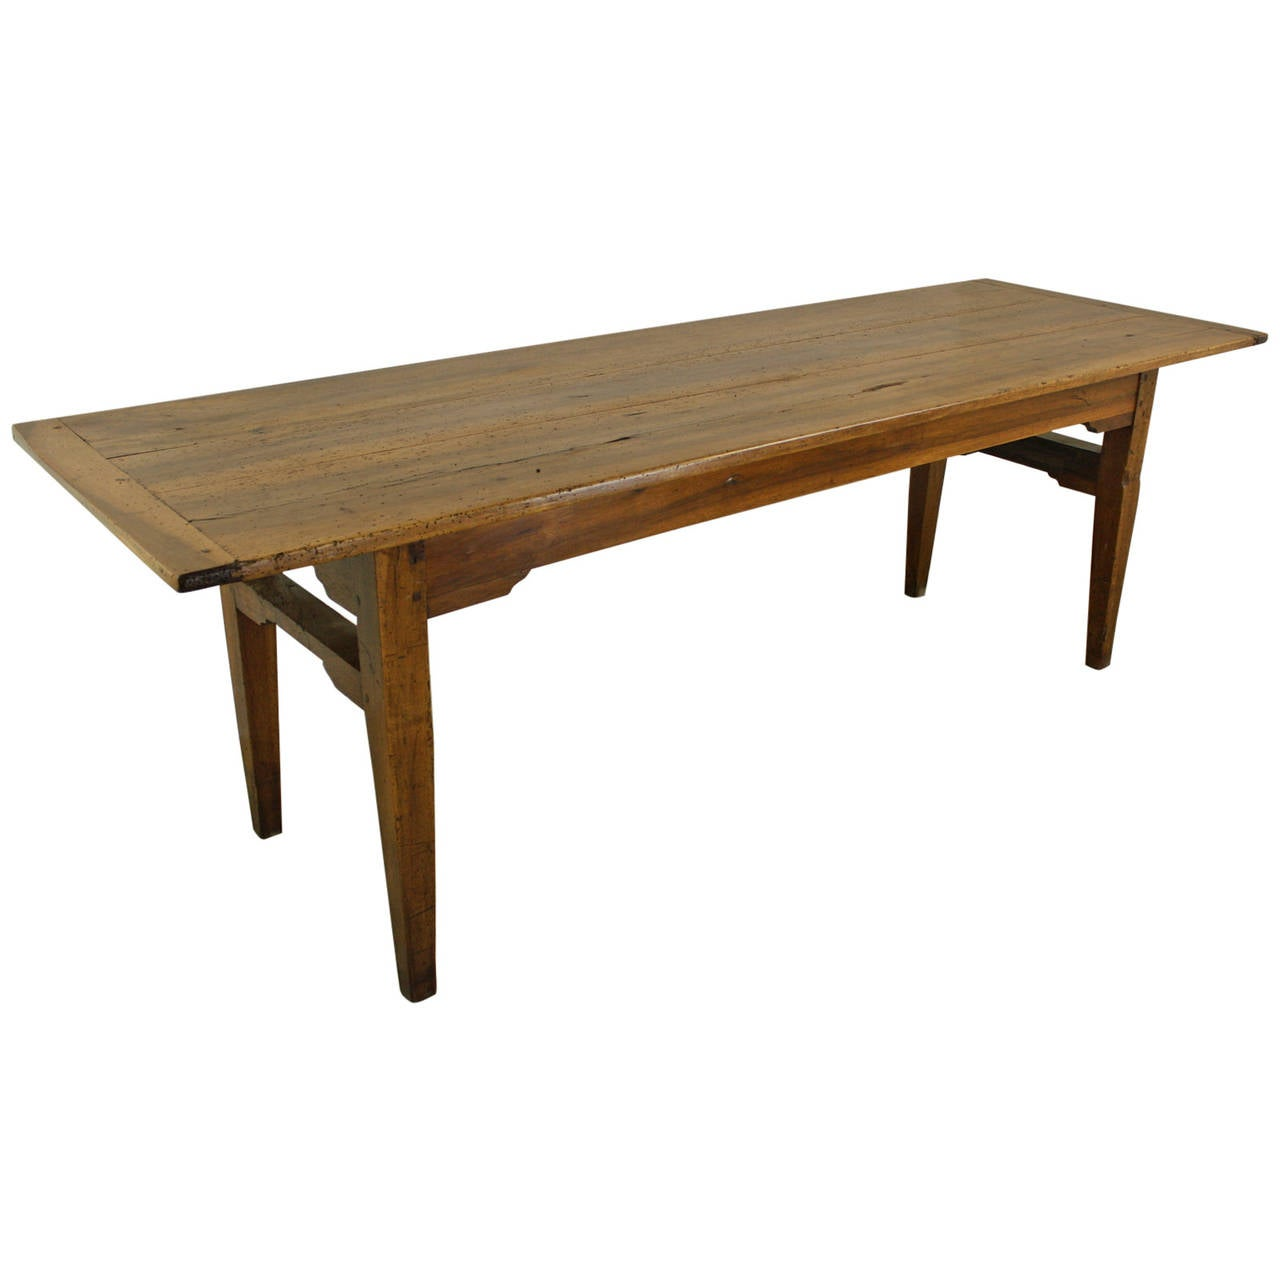 Antique walnut farm table at 1stdibs for 1 1 table